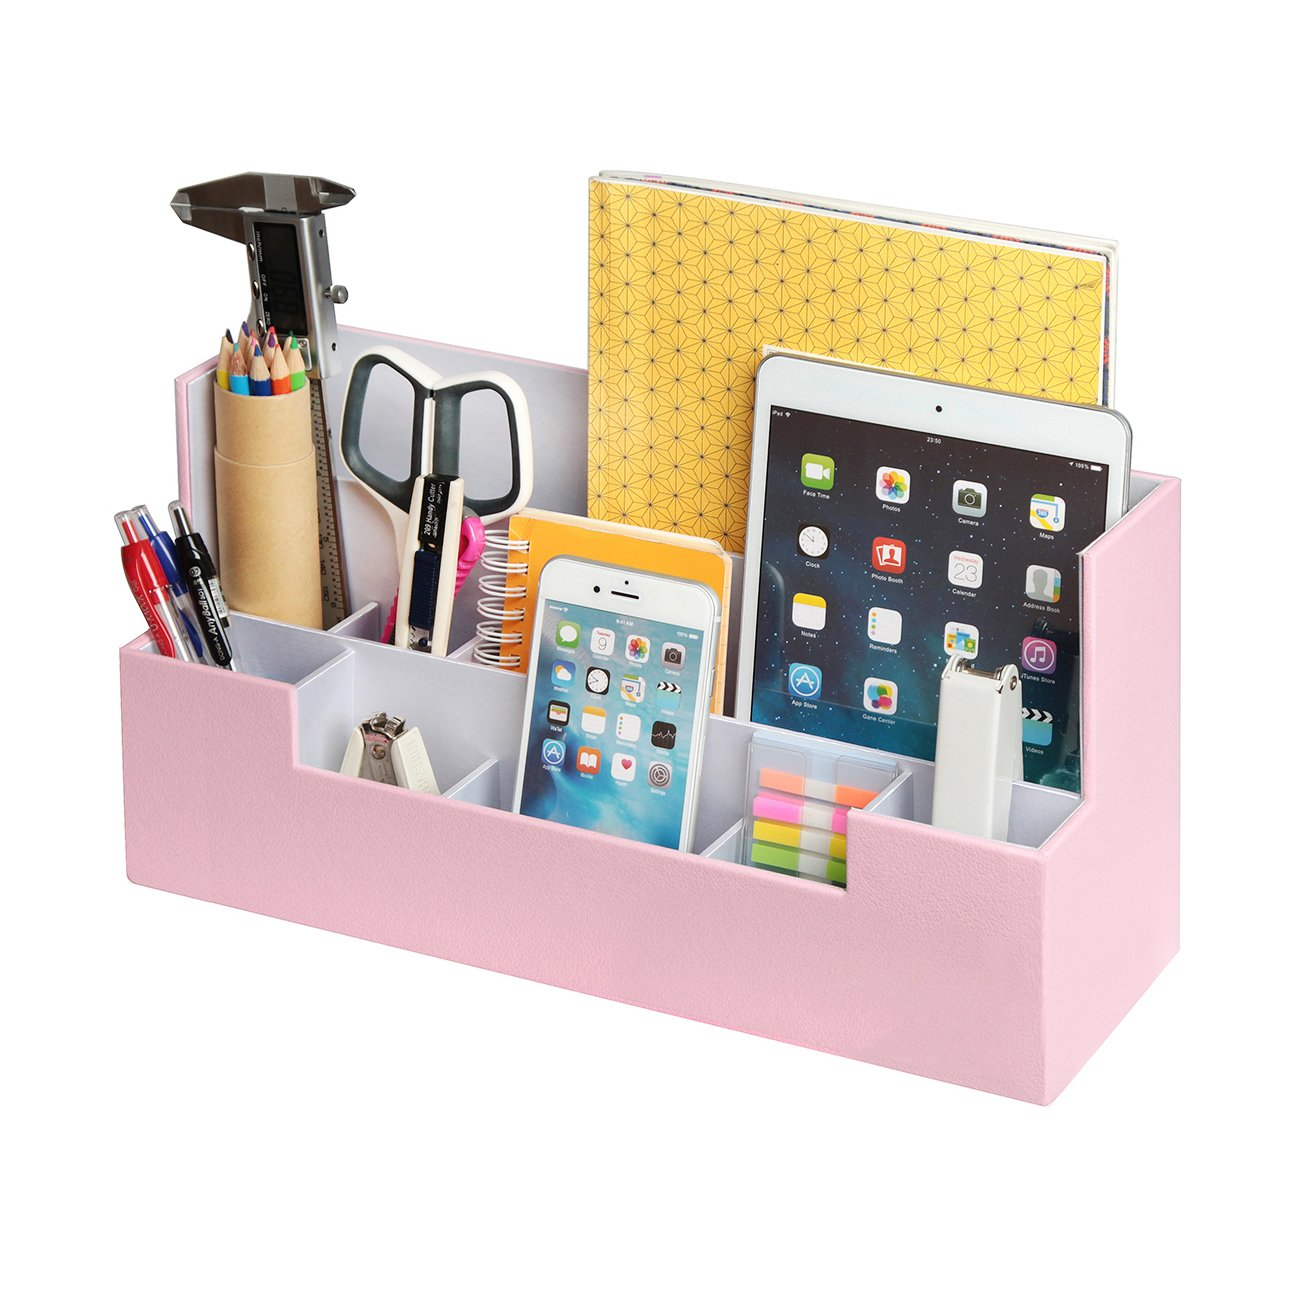 Desk Supplies Office Organizer Caddy (Pink, 13.4 x 5.1 x 7.1 inches) JackCubeDesign-:MK268D